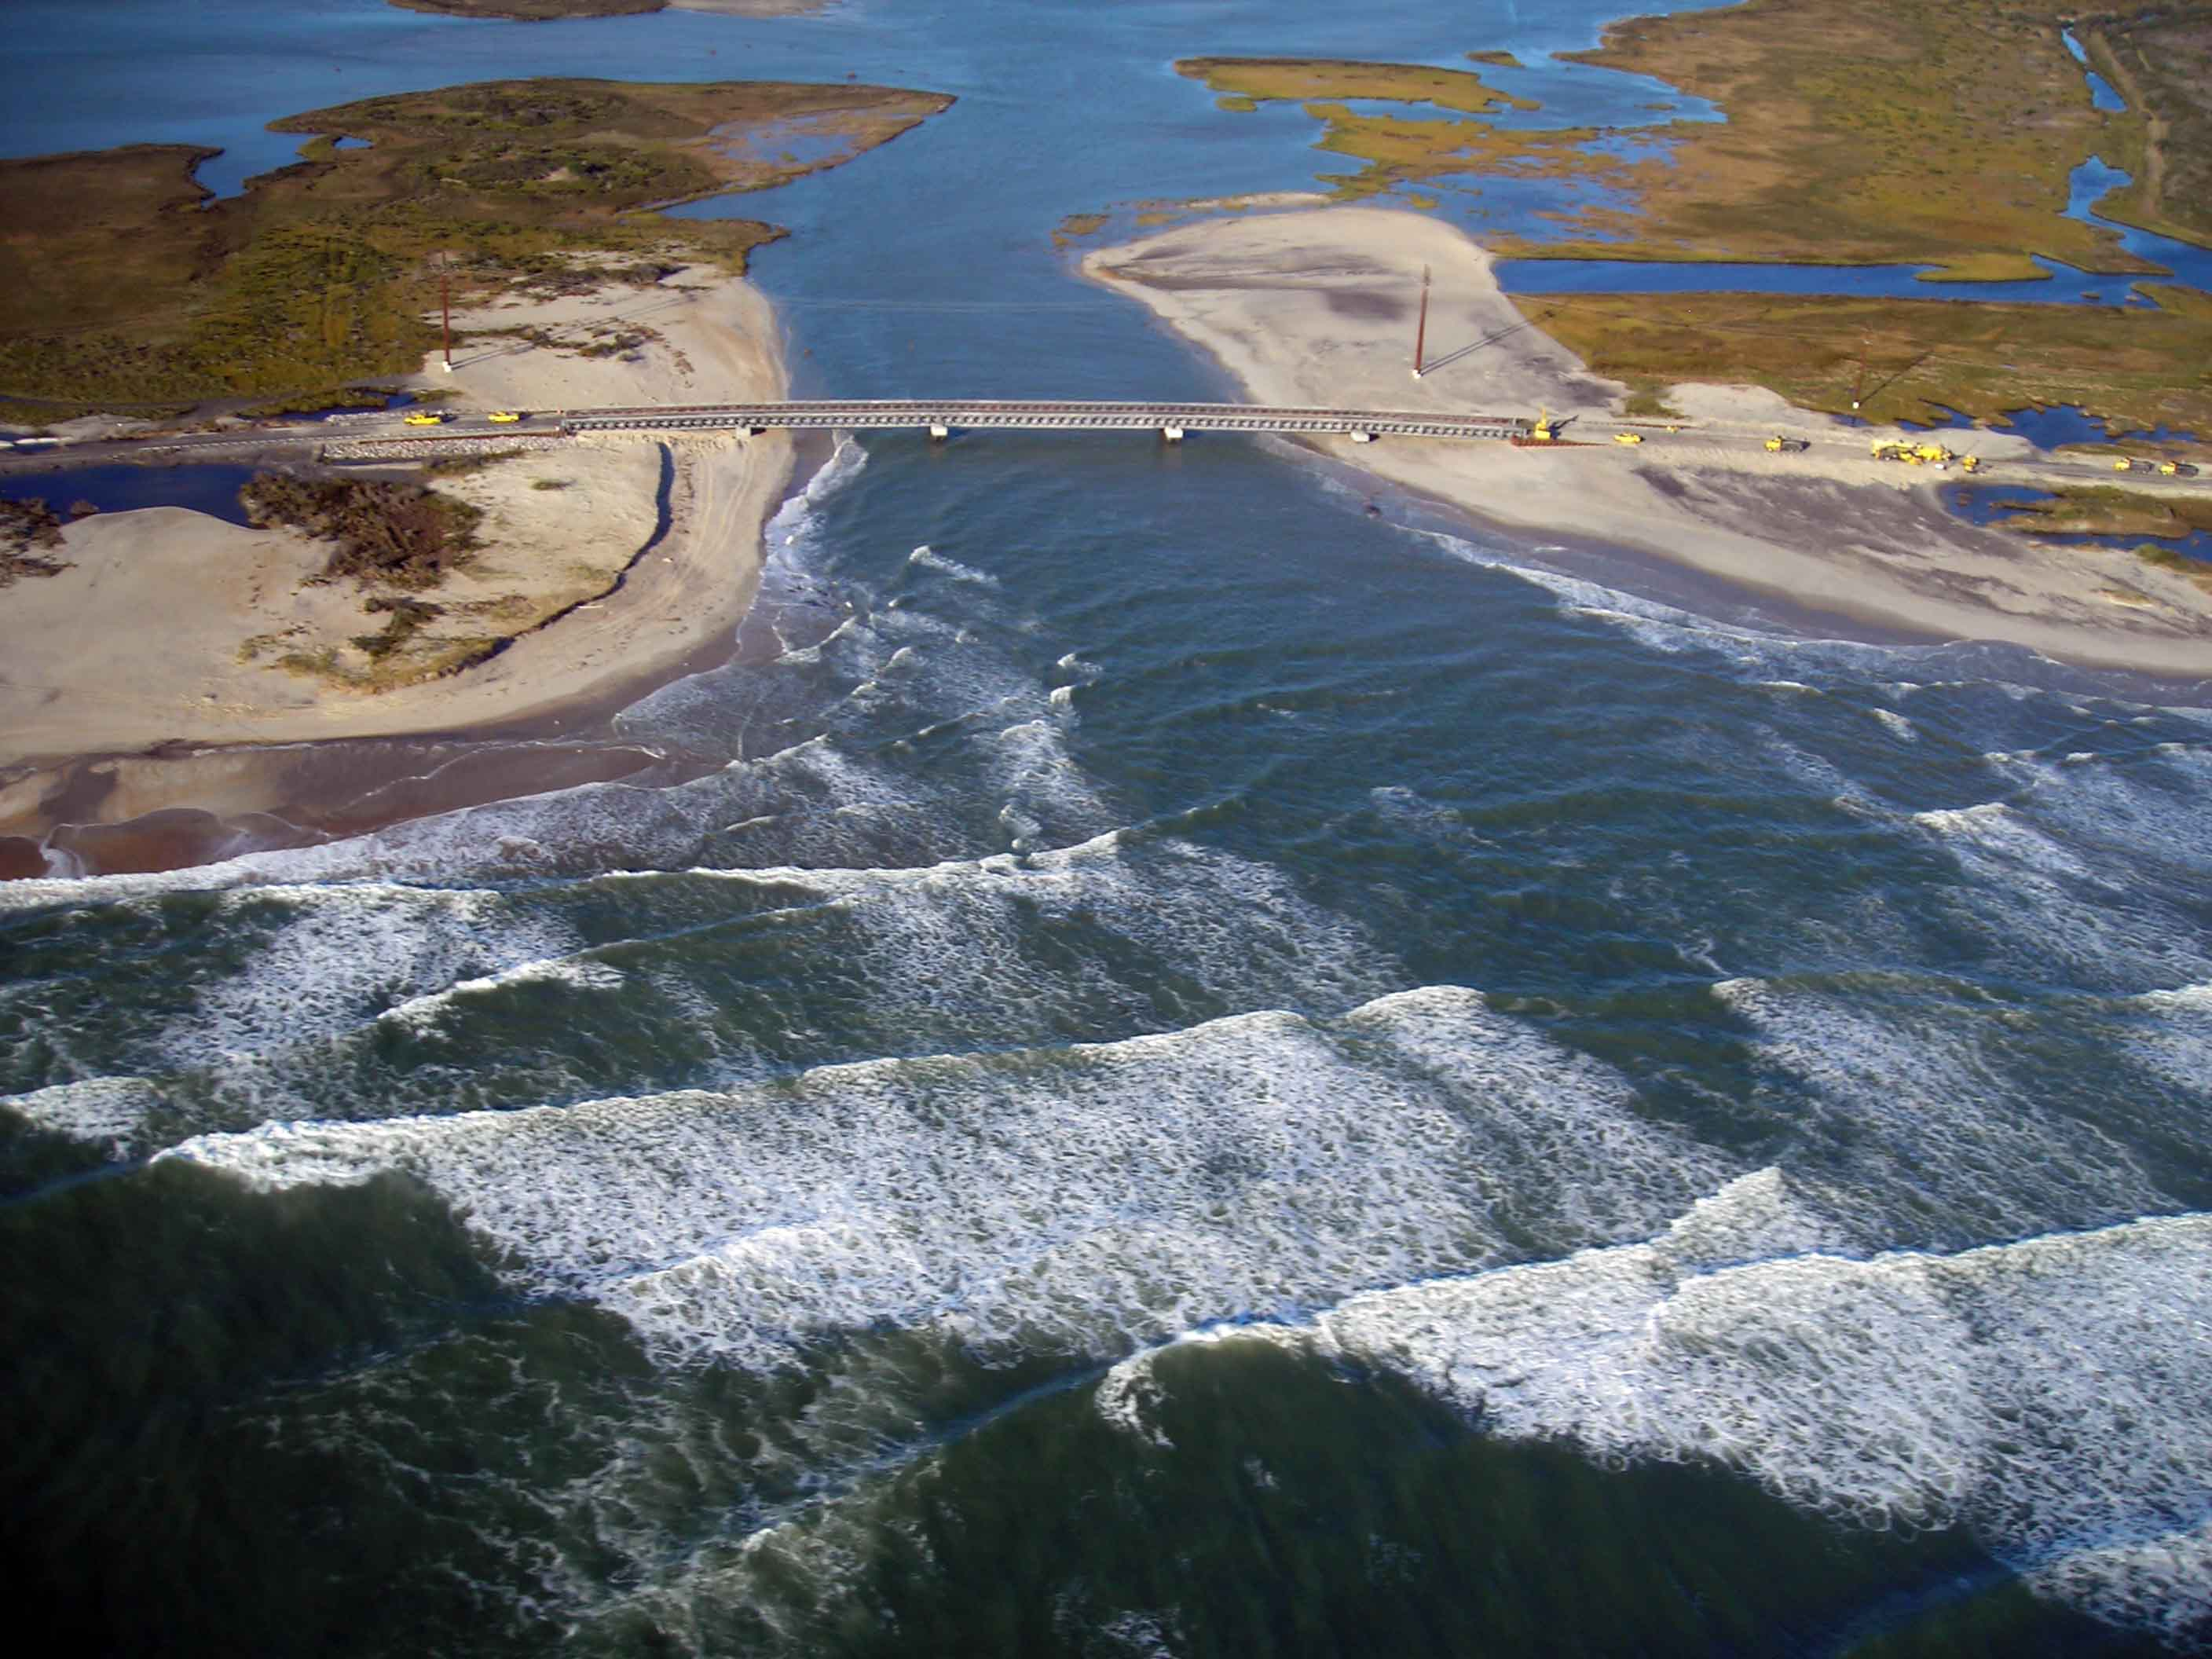 New Inlet, which formed after passage of Hurricane Irene in 2011, following Hurricane Sandy.  Image taken 3 November 2012 by Haiqing Kaczkowski.